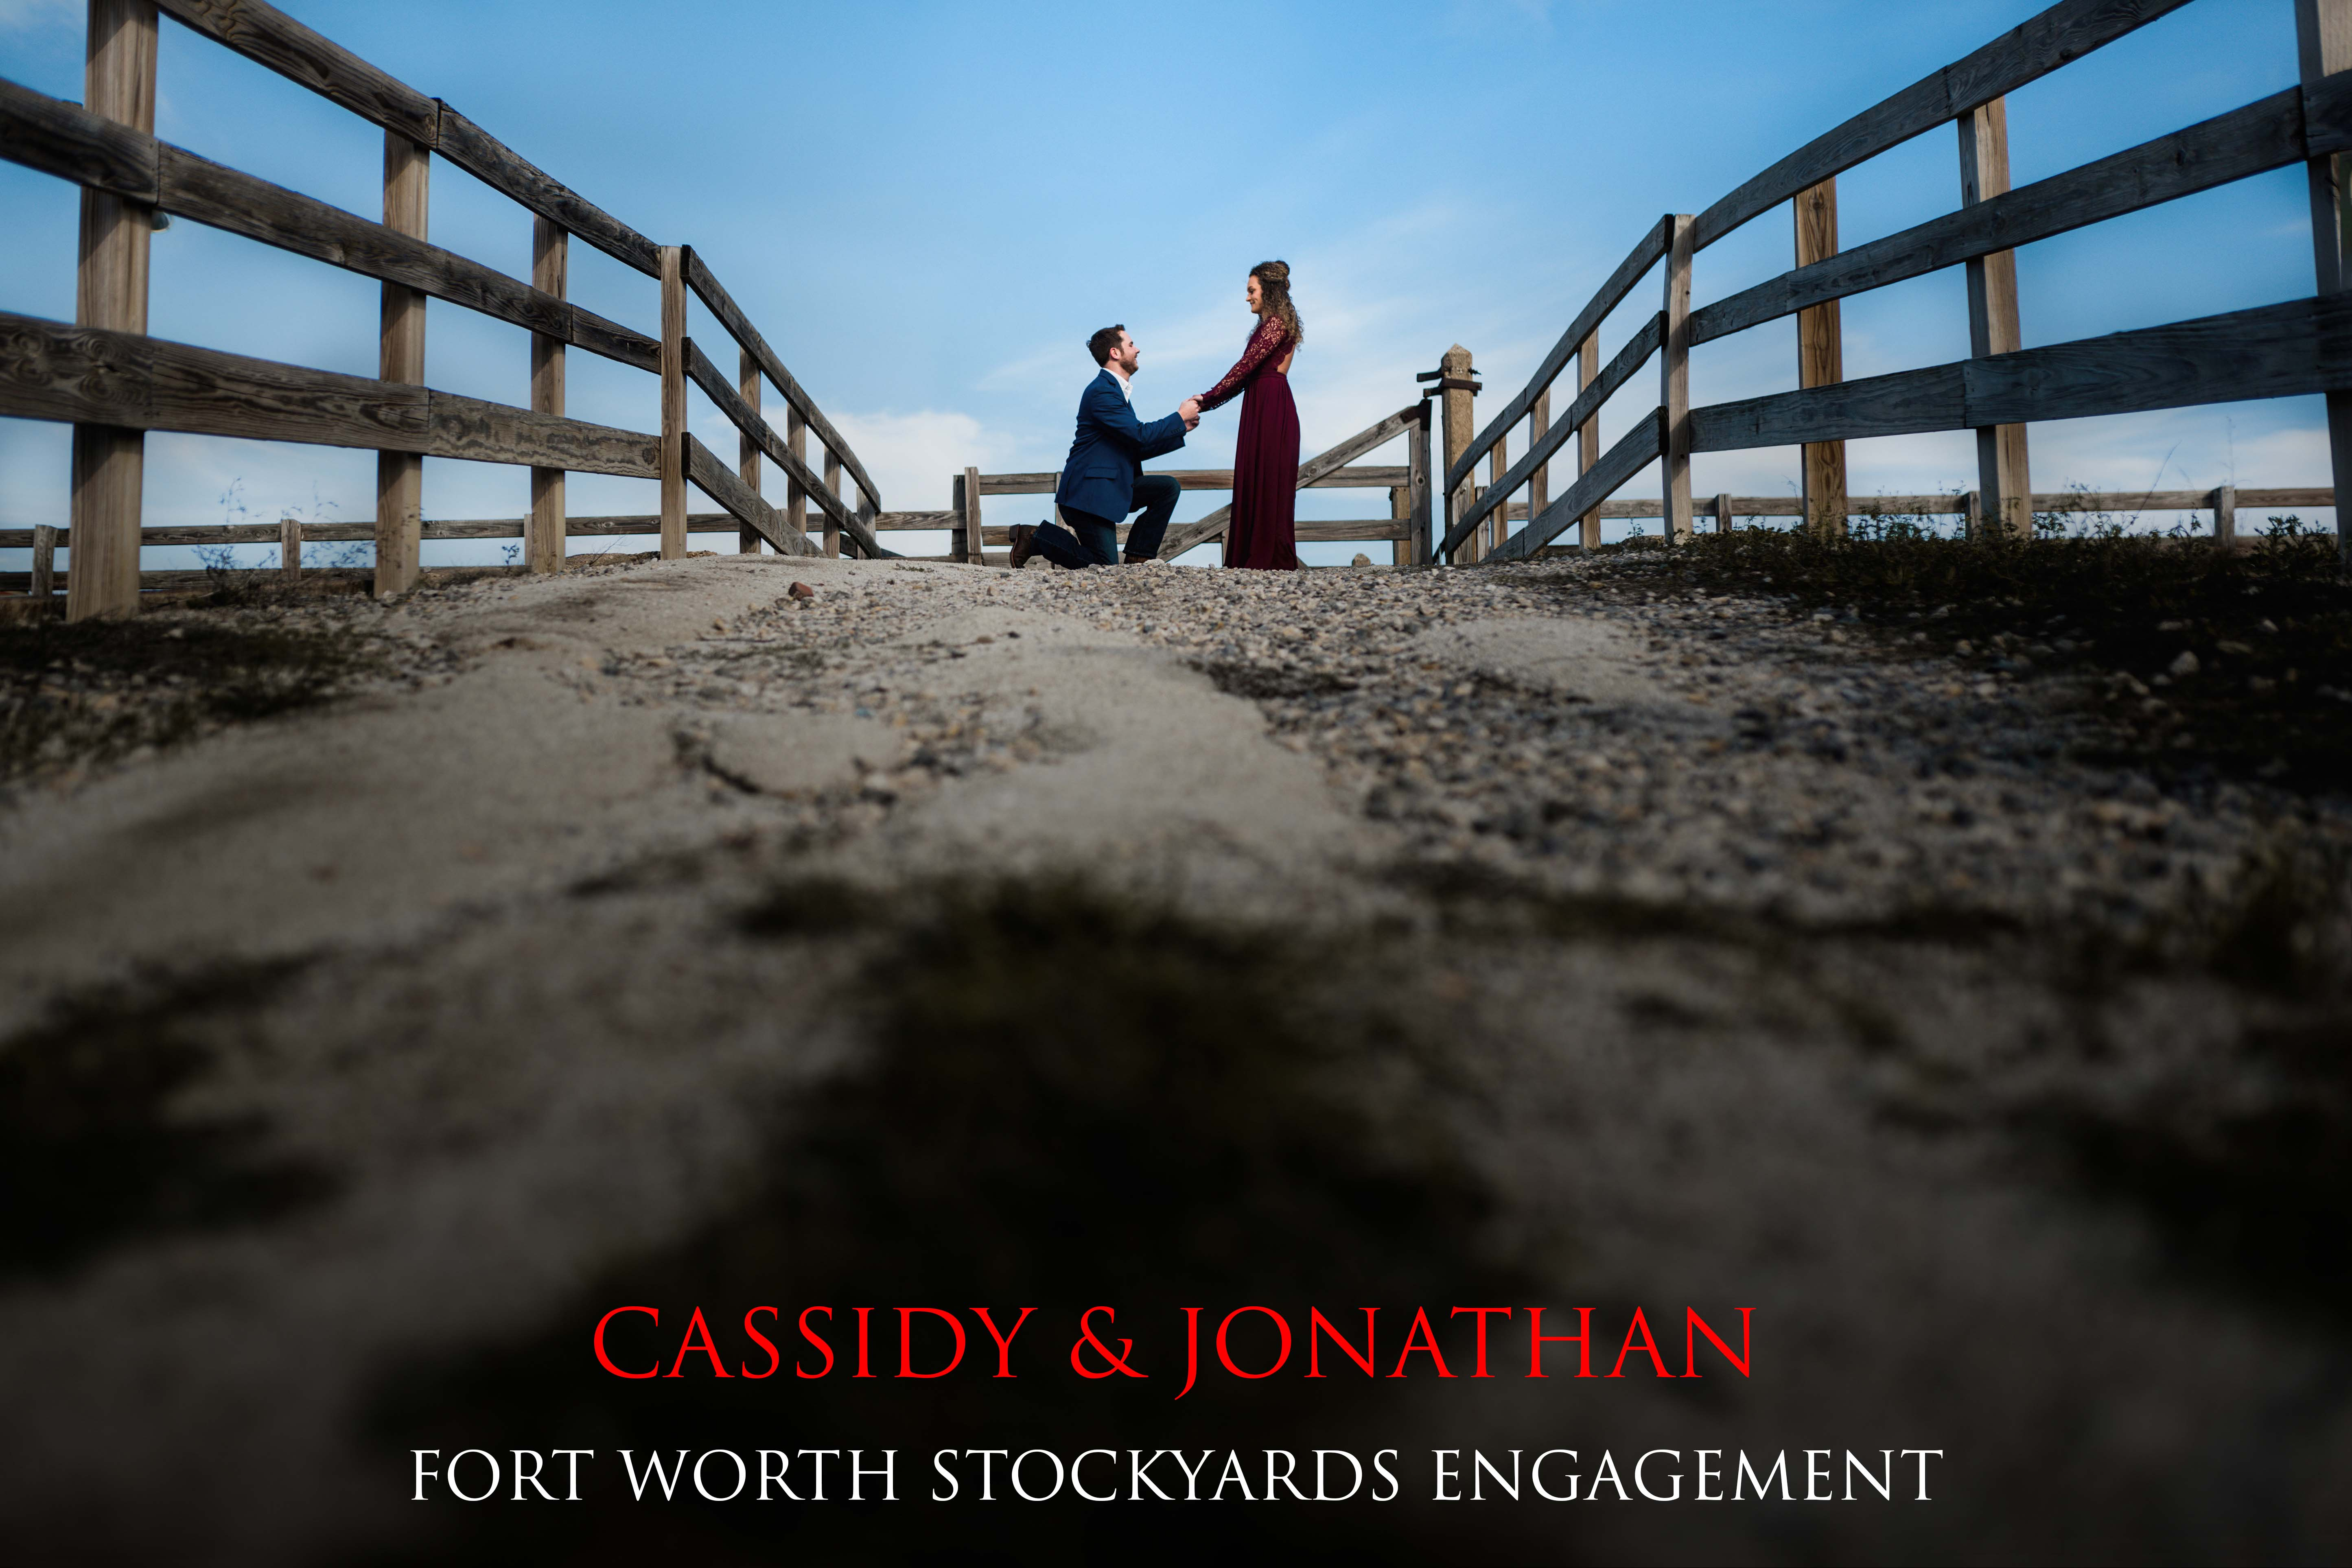 Fort Worth Stockyards Engagement